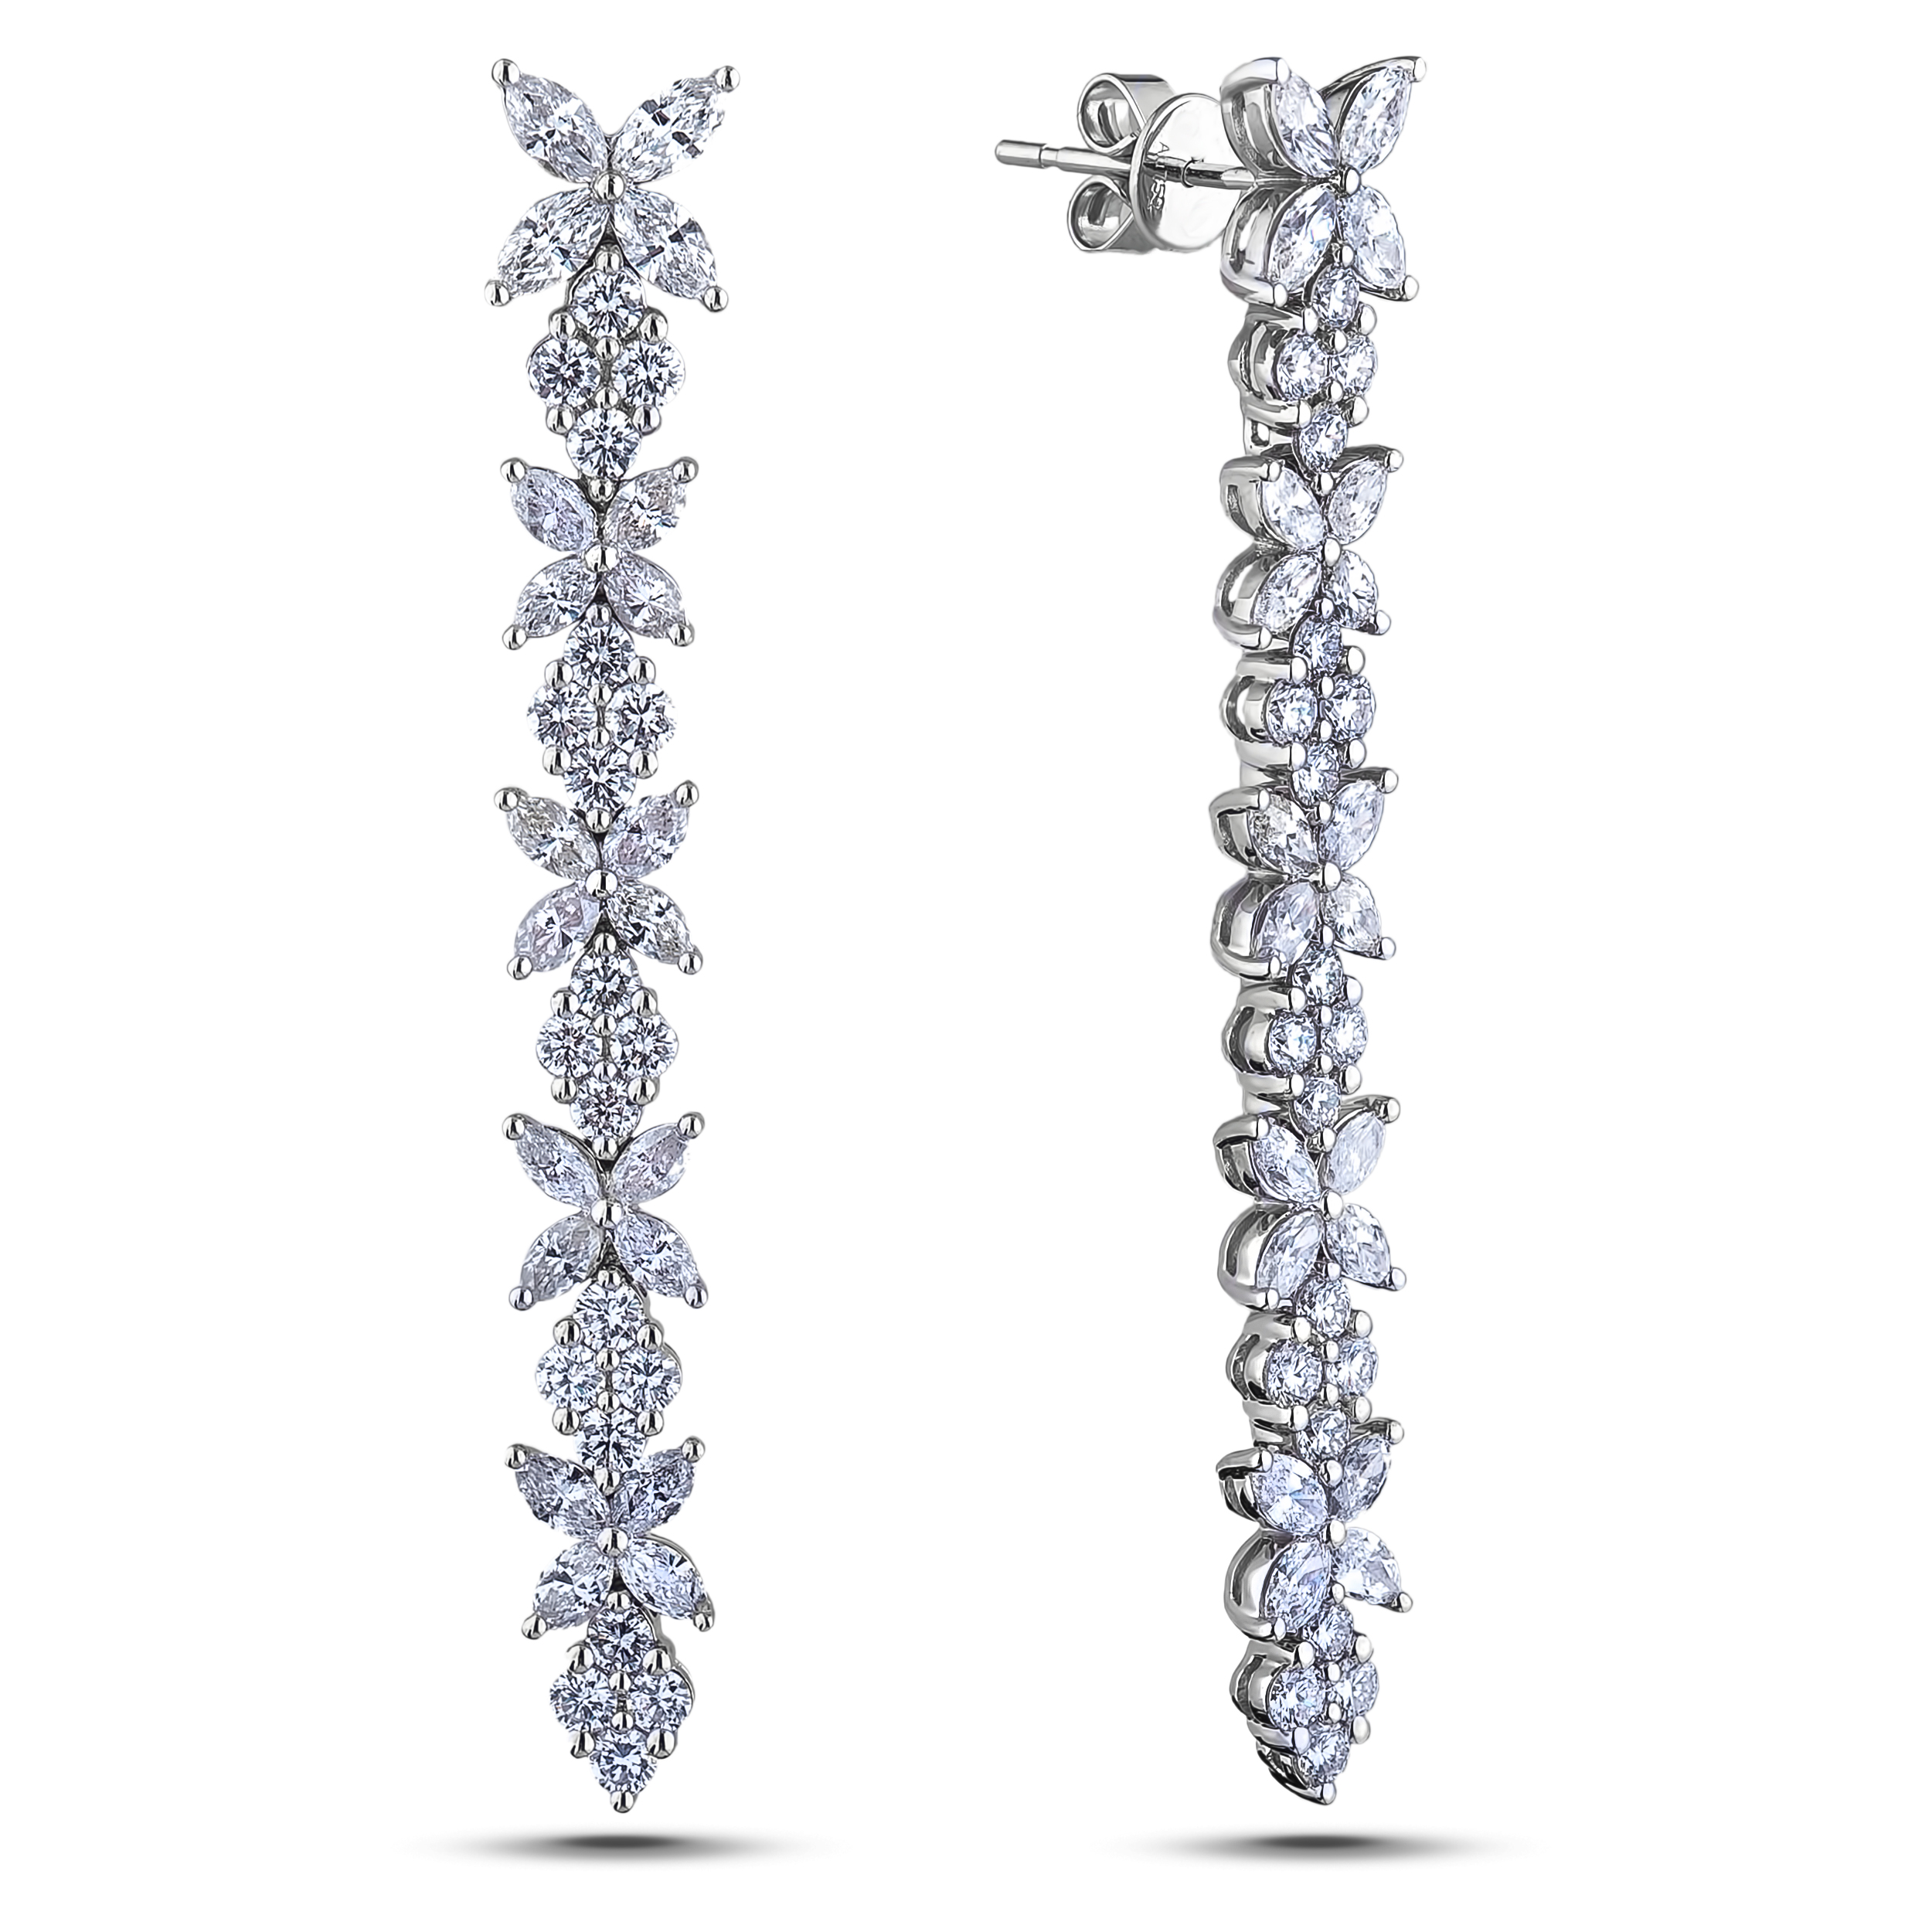 Diamond Dangle Earrings SGE343 (Earrings)